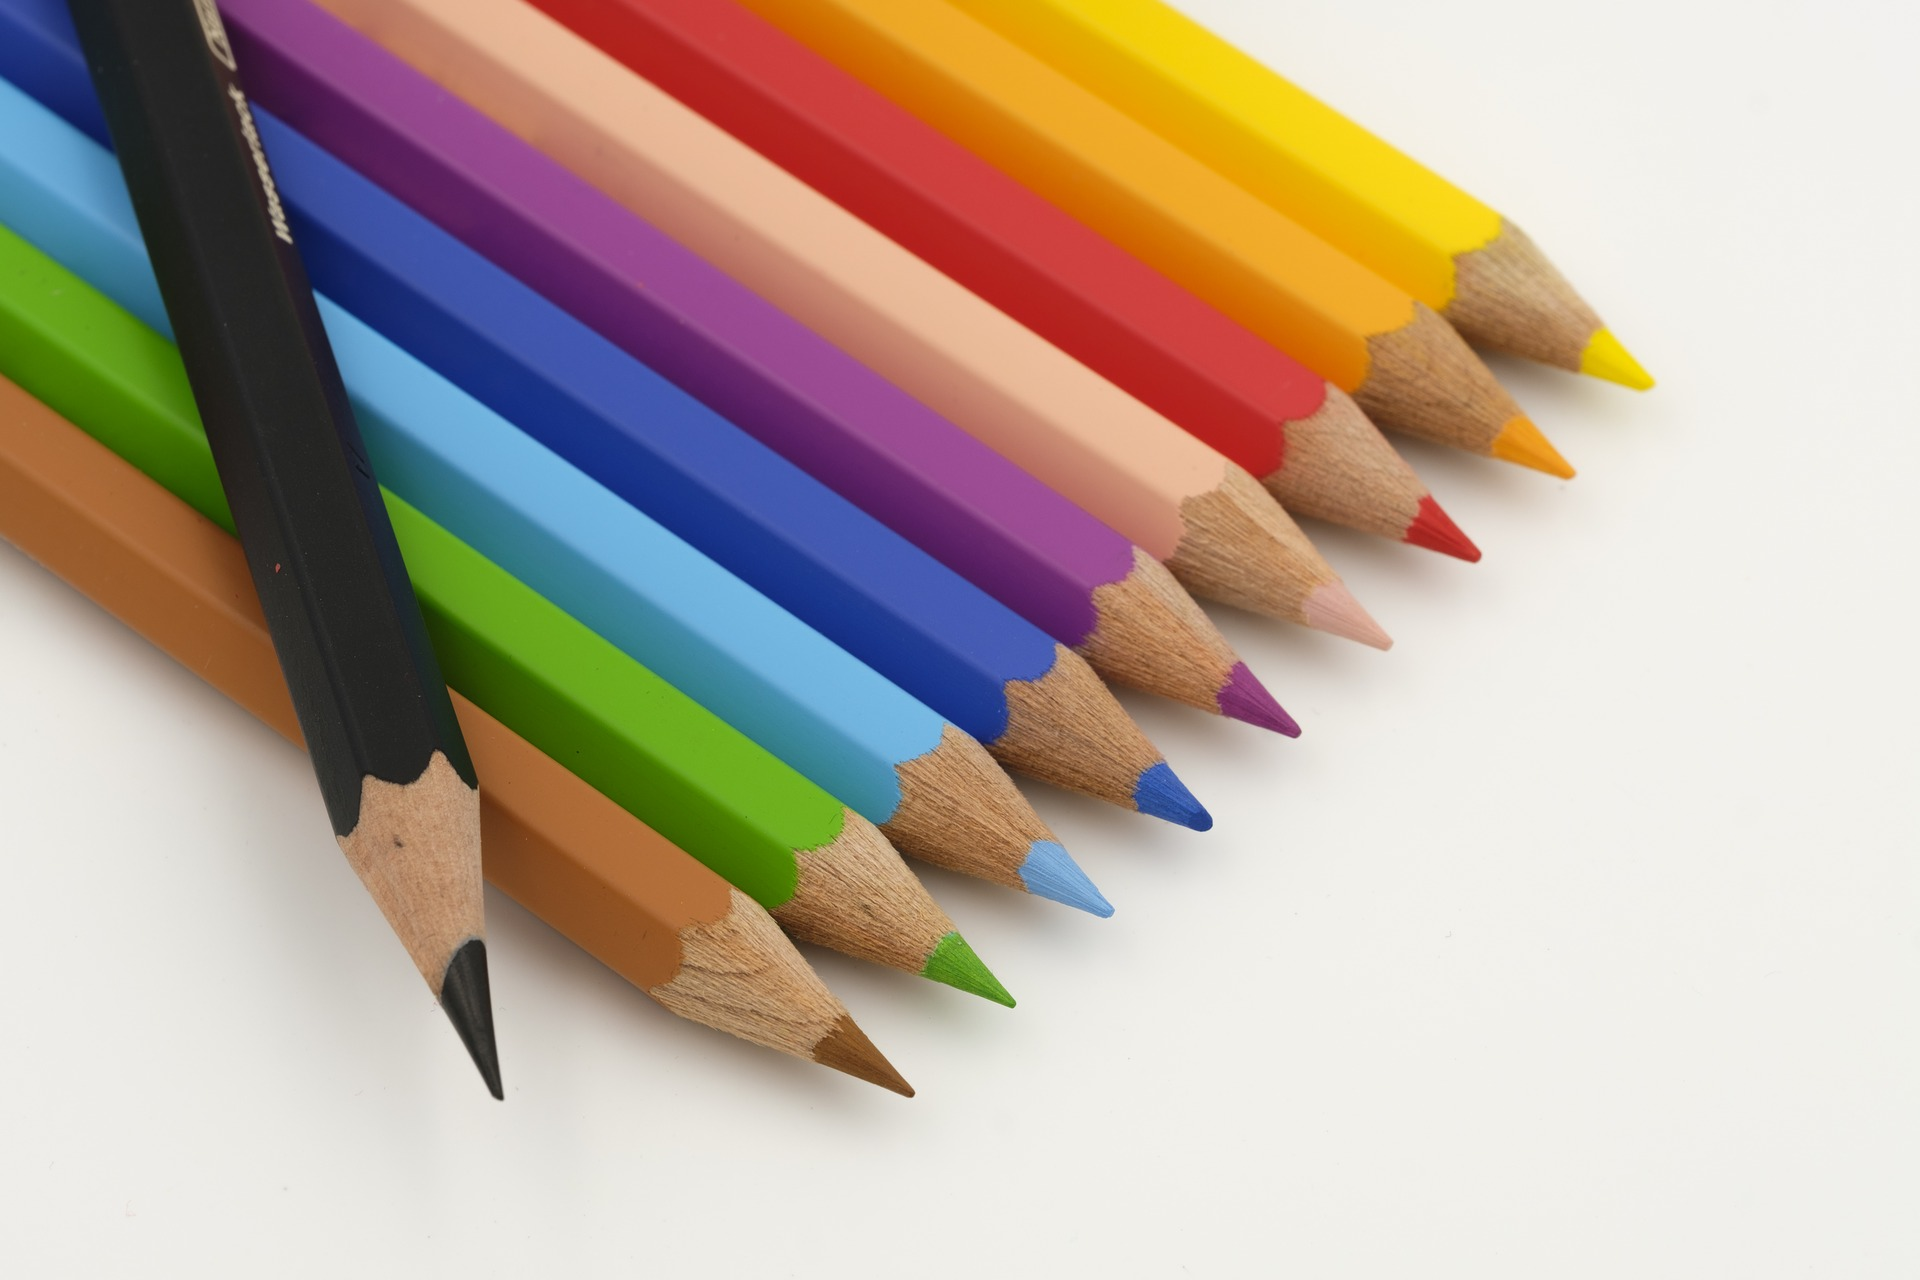 Colouring crayons - Website colours